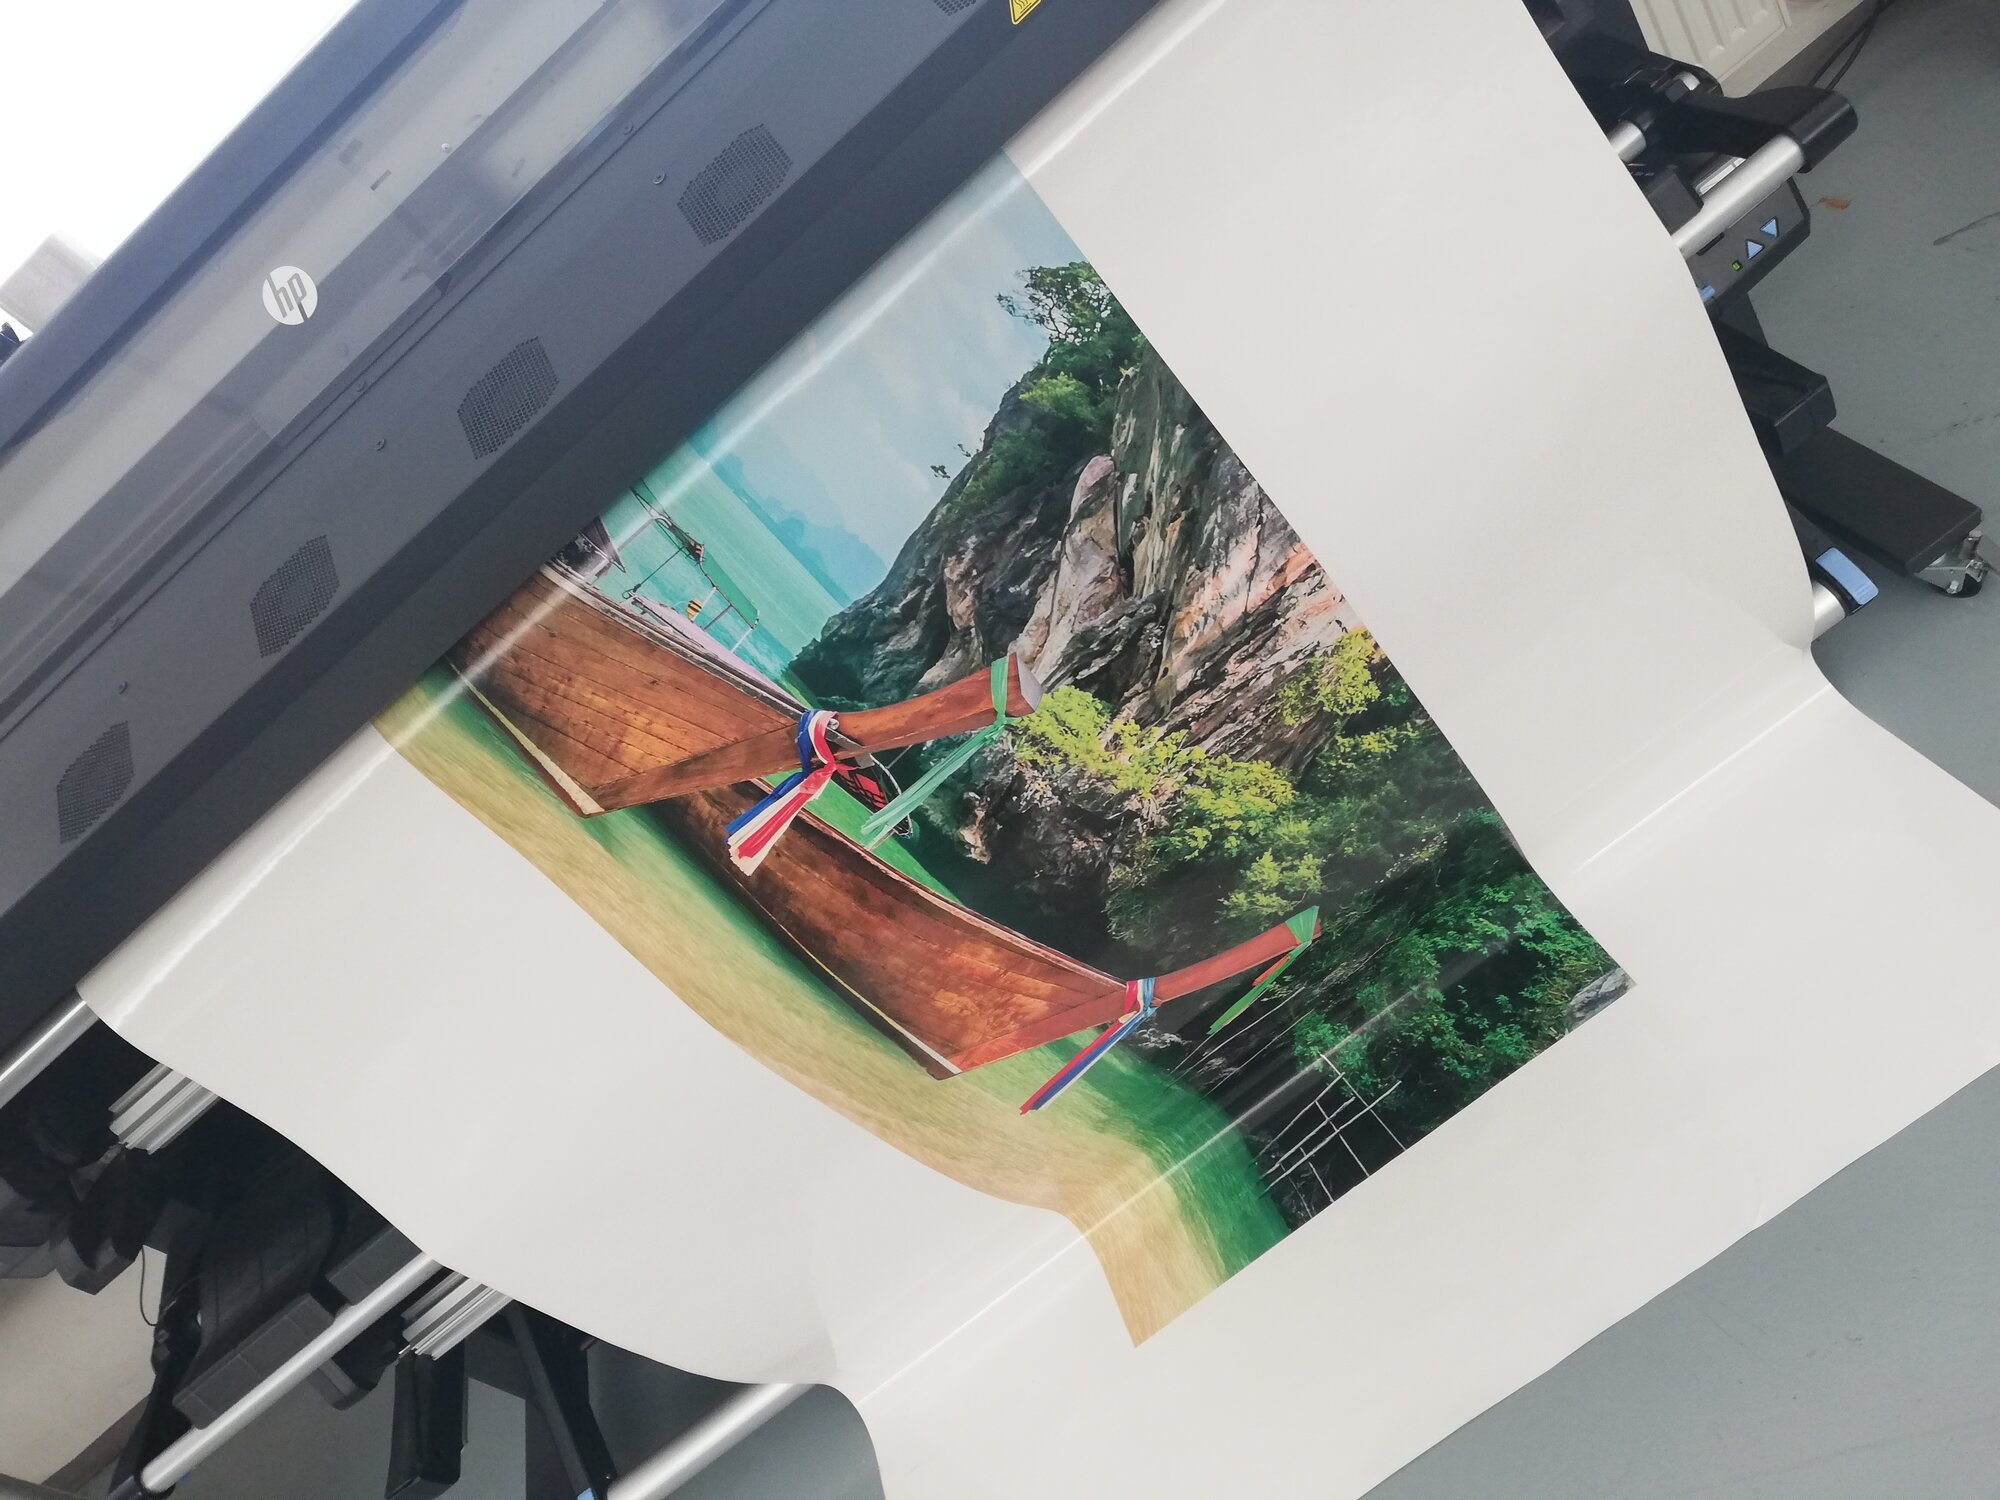 https://print.arcdesign.sk/images/products_gallery_images/IMG_20200520_112555.jpg